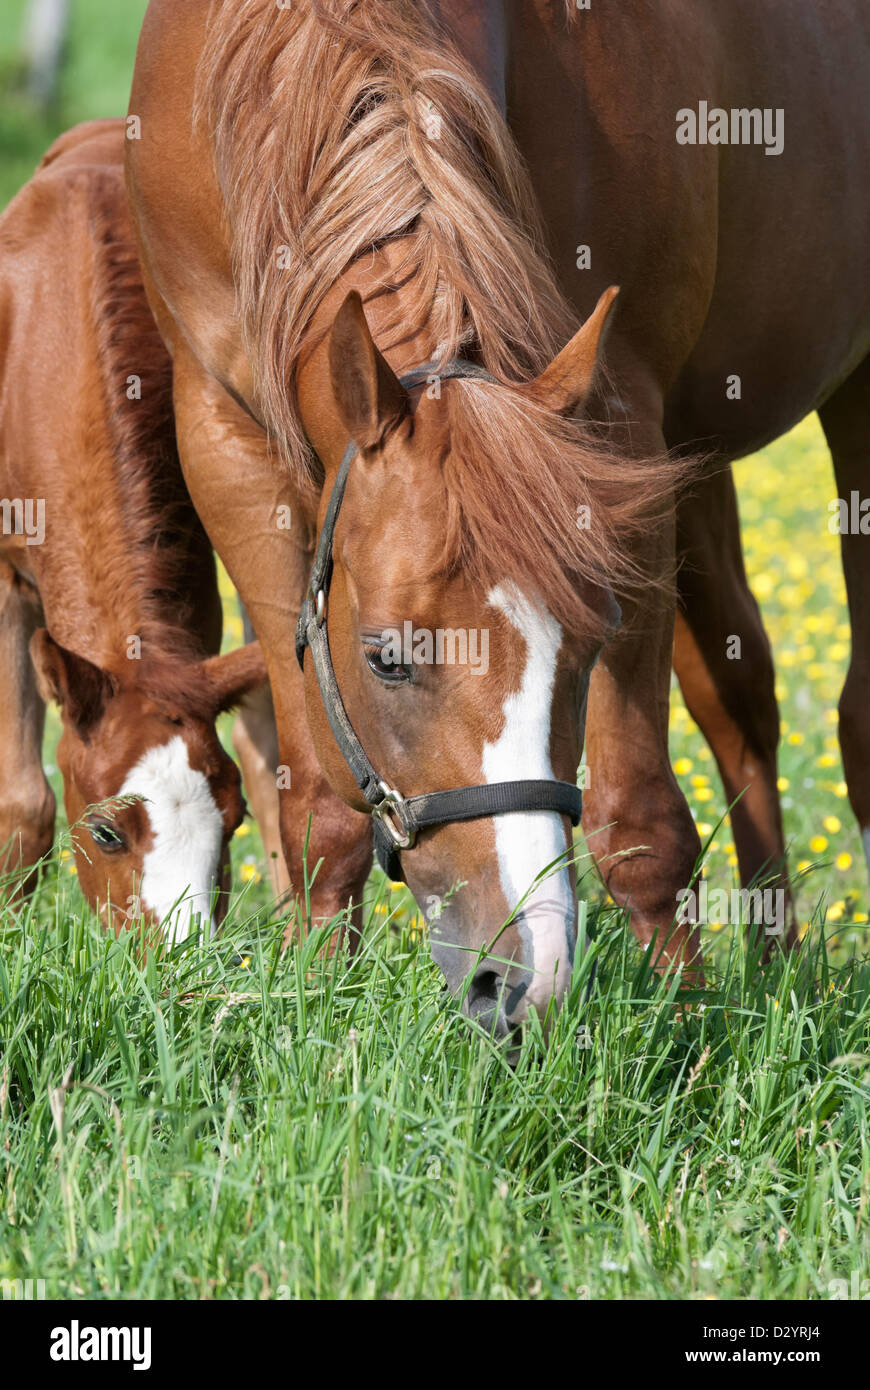 Purebred Quarter Horses, a mare and her foal, grazing in a field of buttercups. - Stock Image